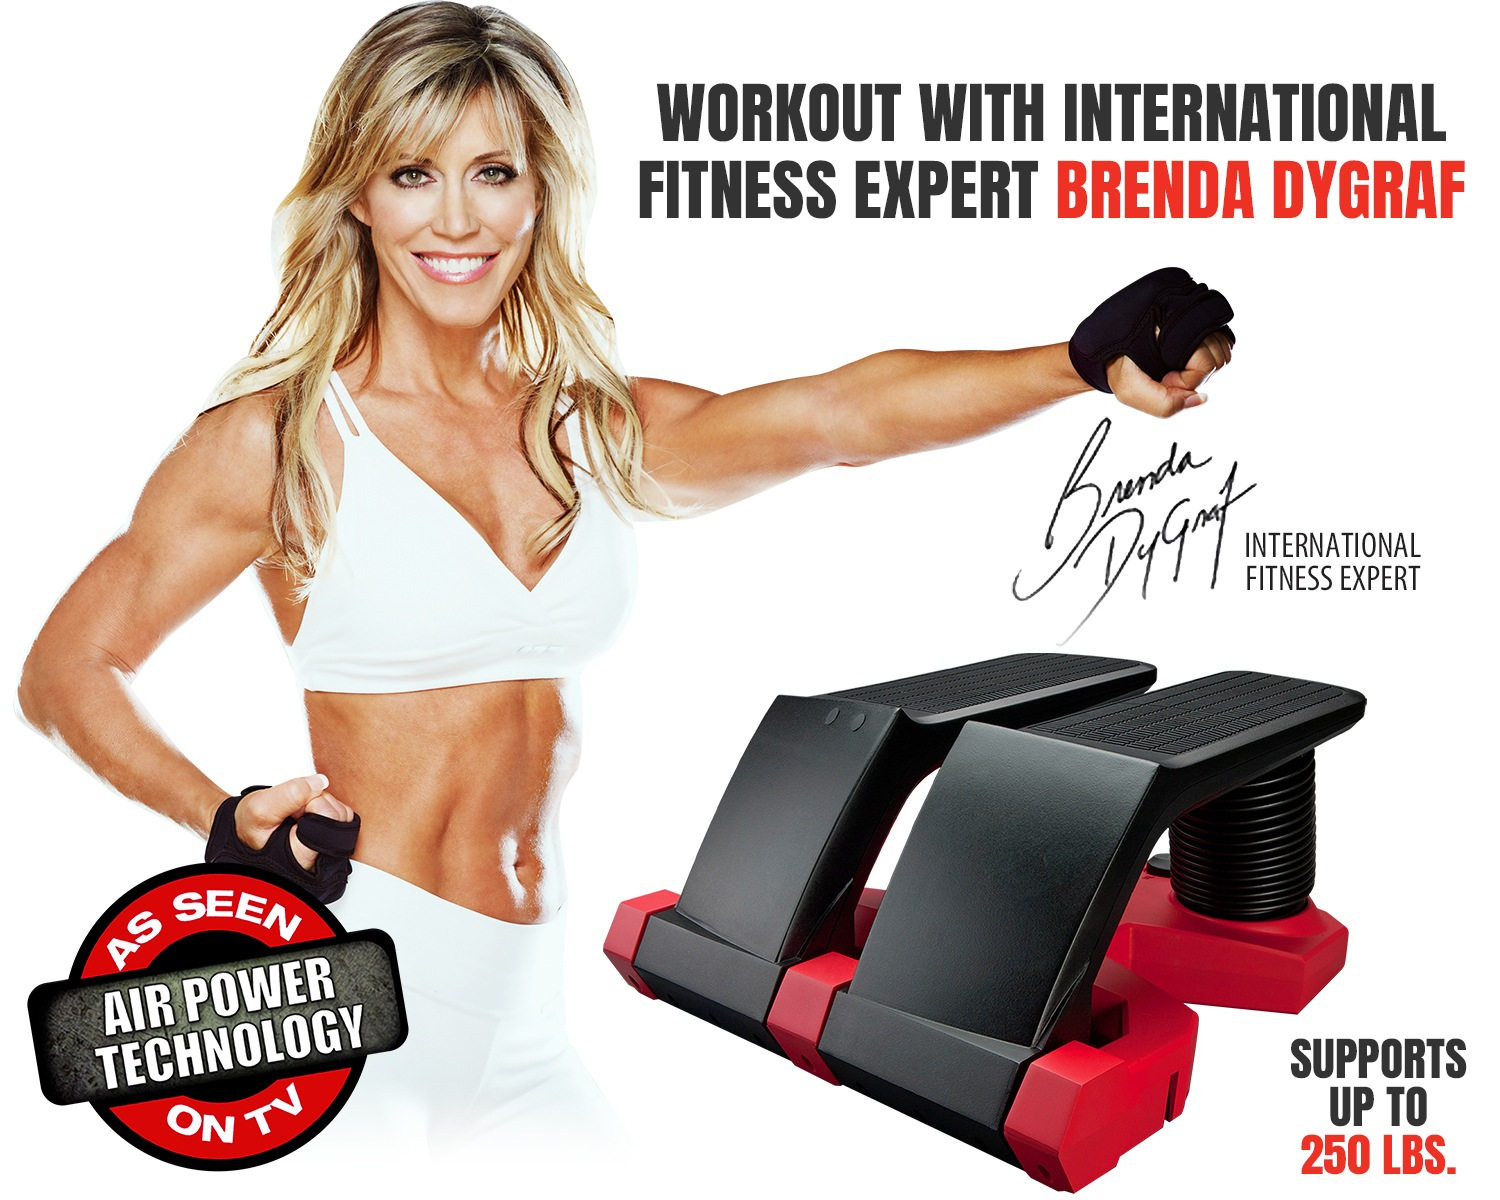 workout with international fitness expert Brenda Dygraf | As Seen on TV Air Power Technology | Supports up to 250 pounds